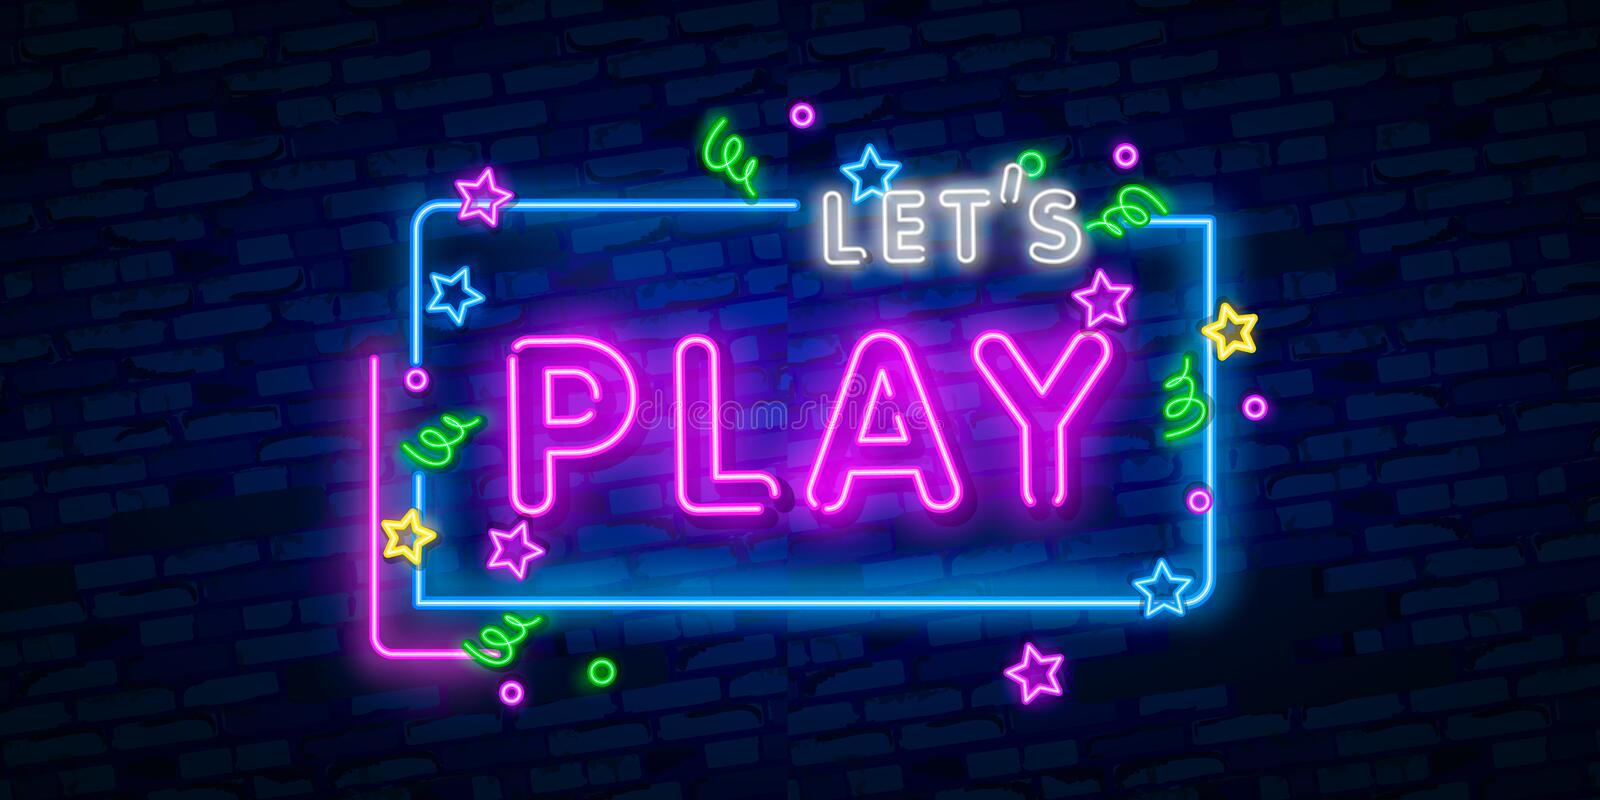 Let`s Play neon sign, bright signboard, light banner. Game logo, emblem and label. Neon sign creator. Neon text edit. Let`s Play neon sign, bright signboard vector illustration